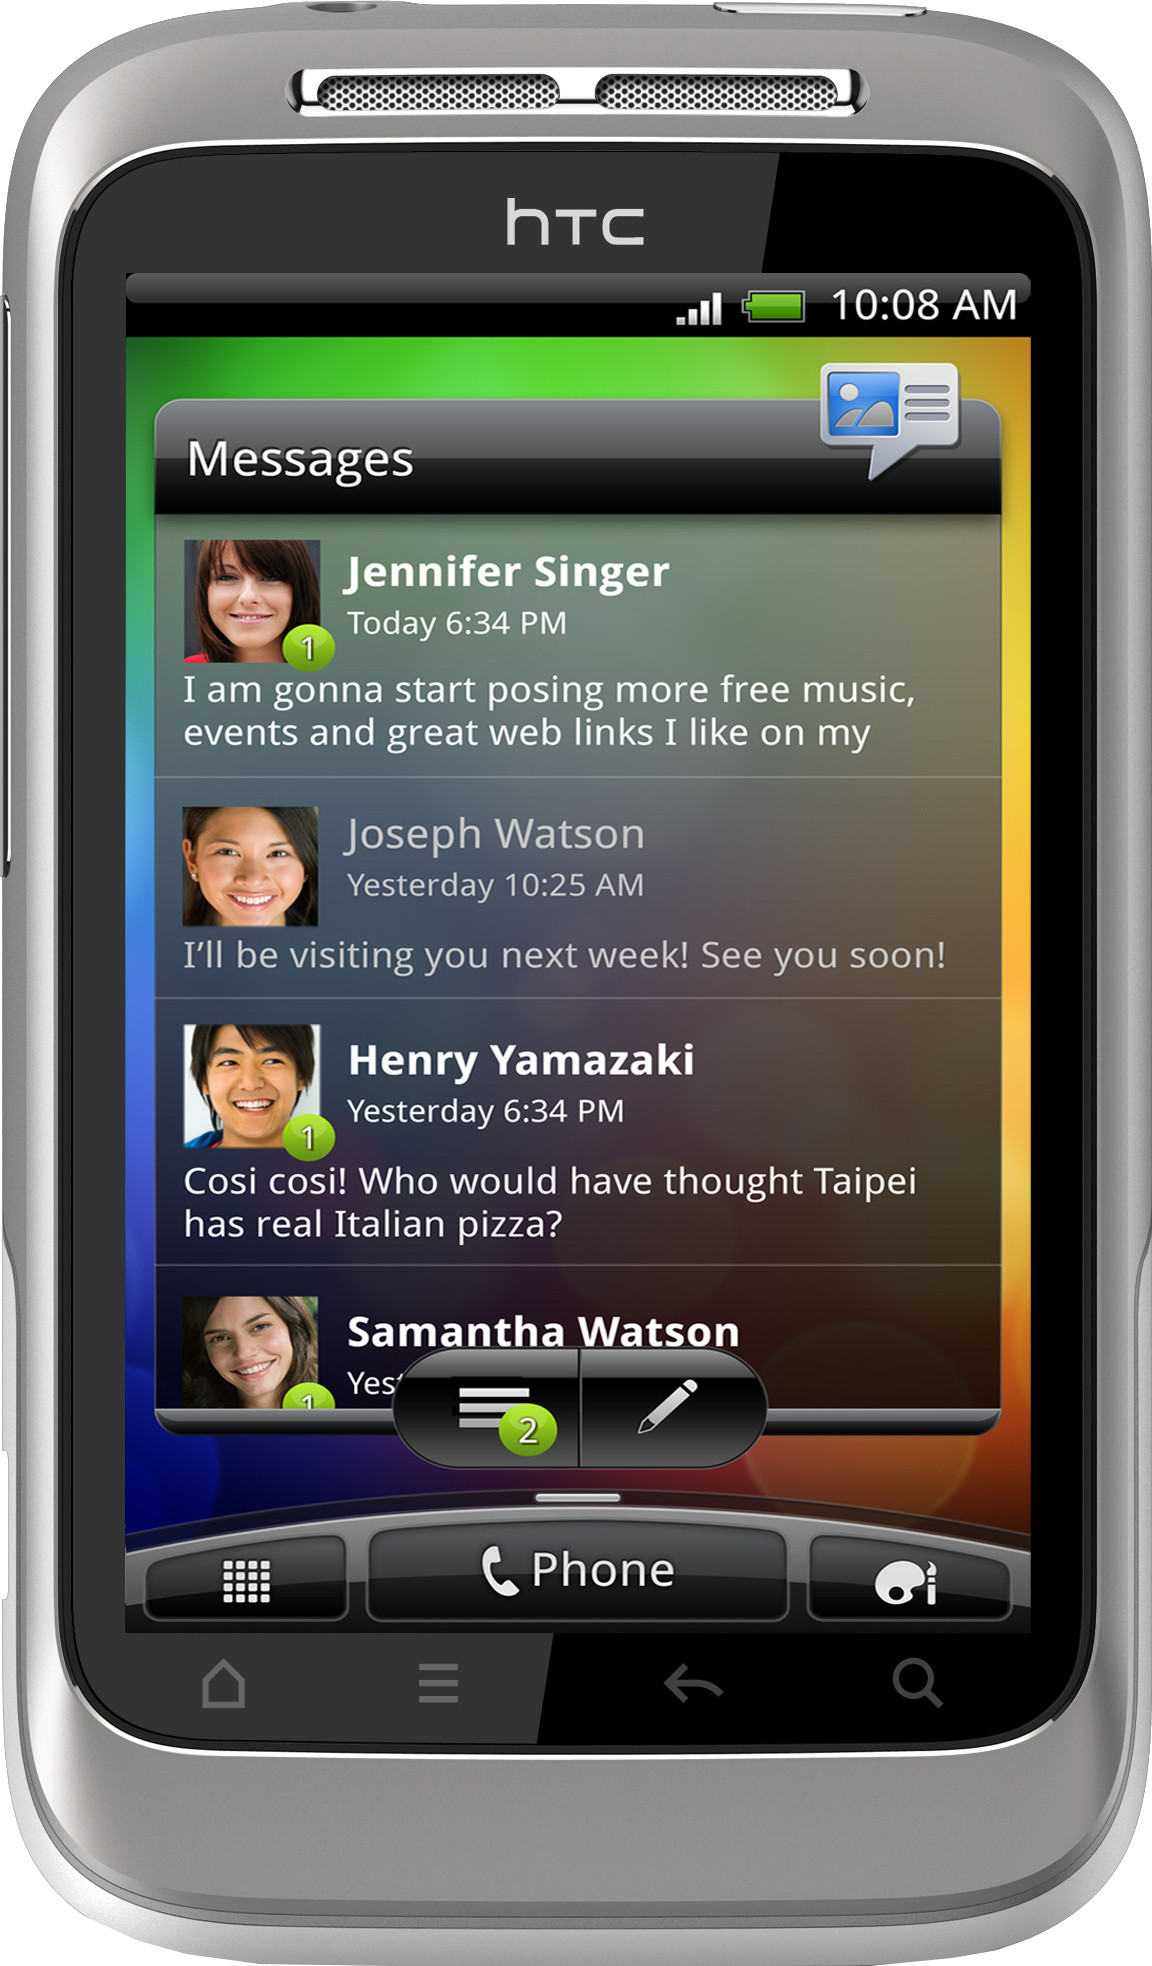 classic buy htc mobile in india online Xperia